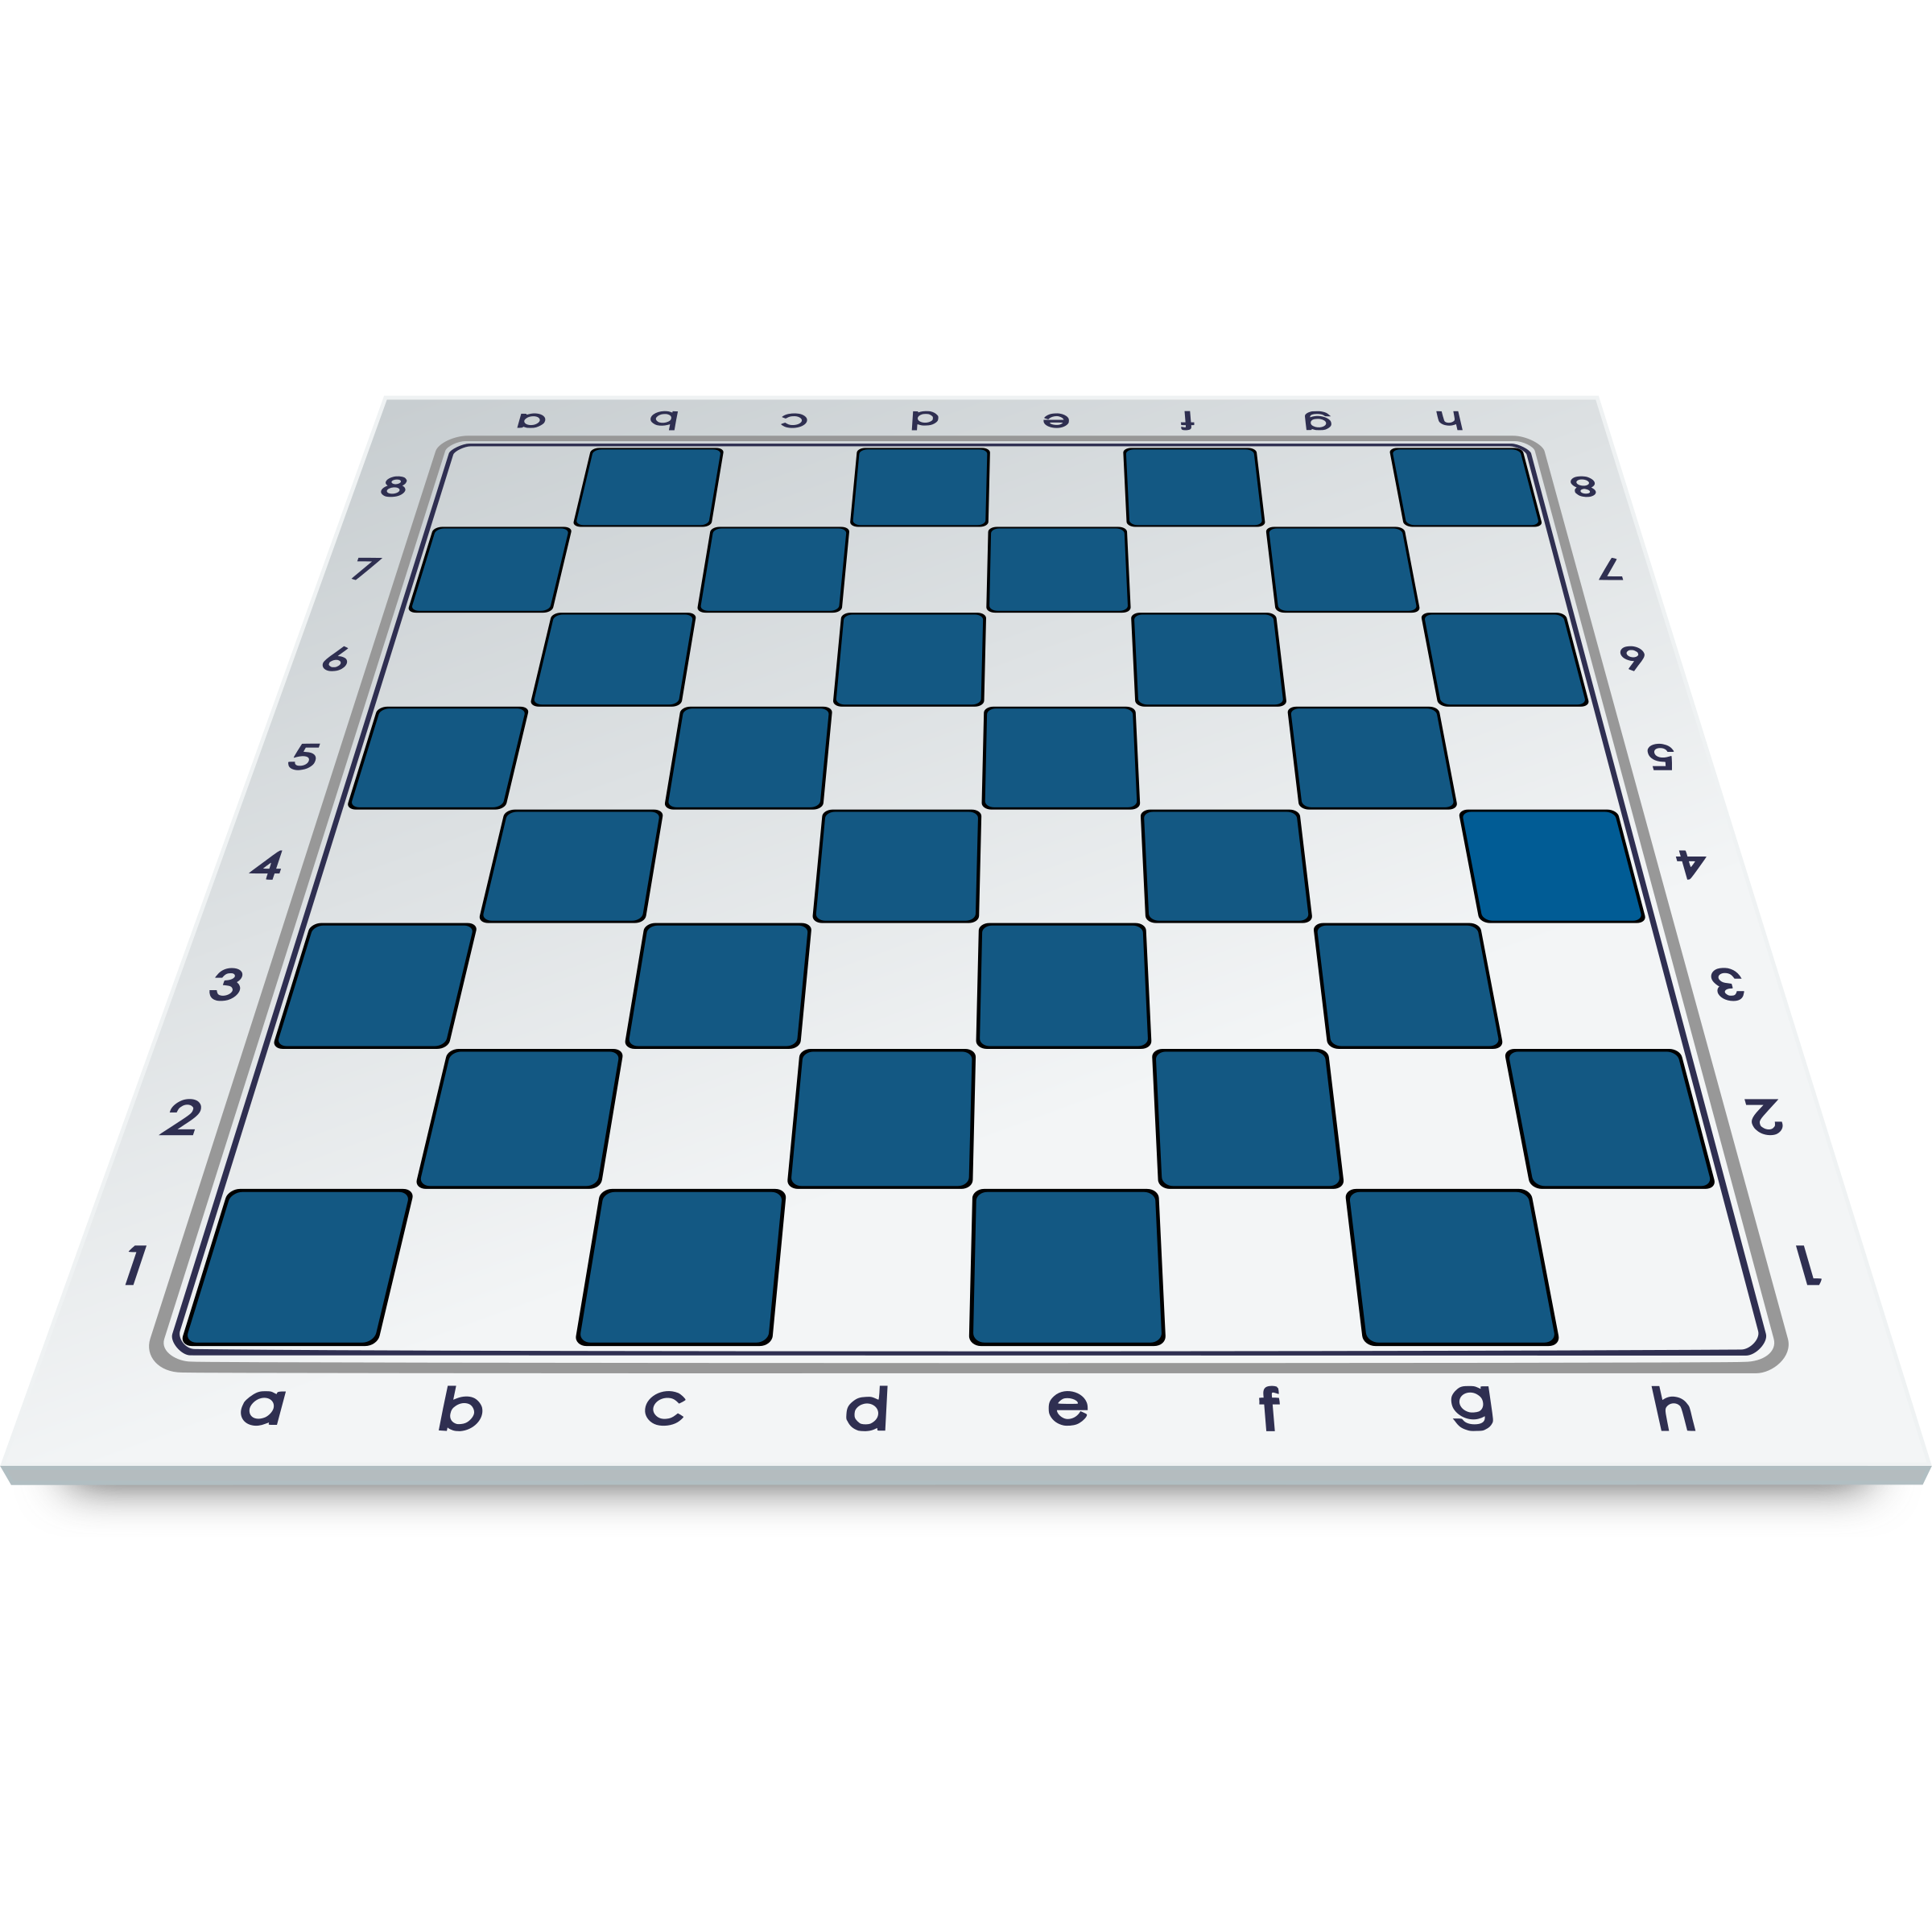 Chess Board in Frontal Perspective / Tablero en Perspectiva Frontal by DG-RA